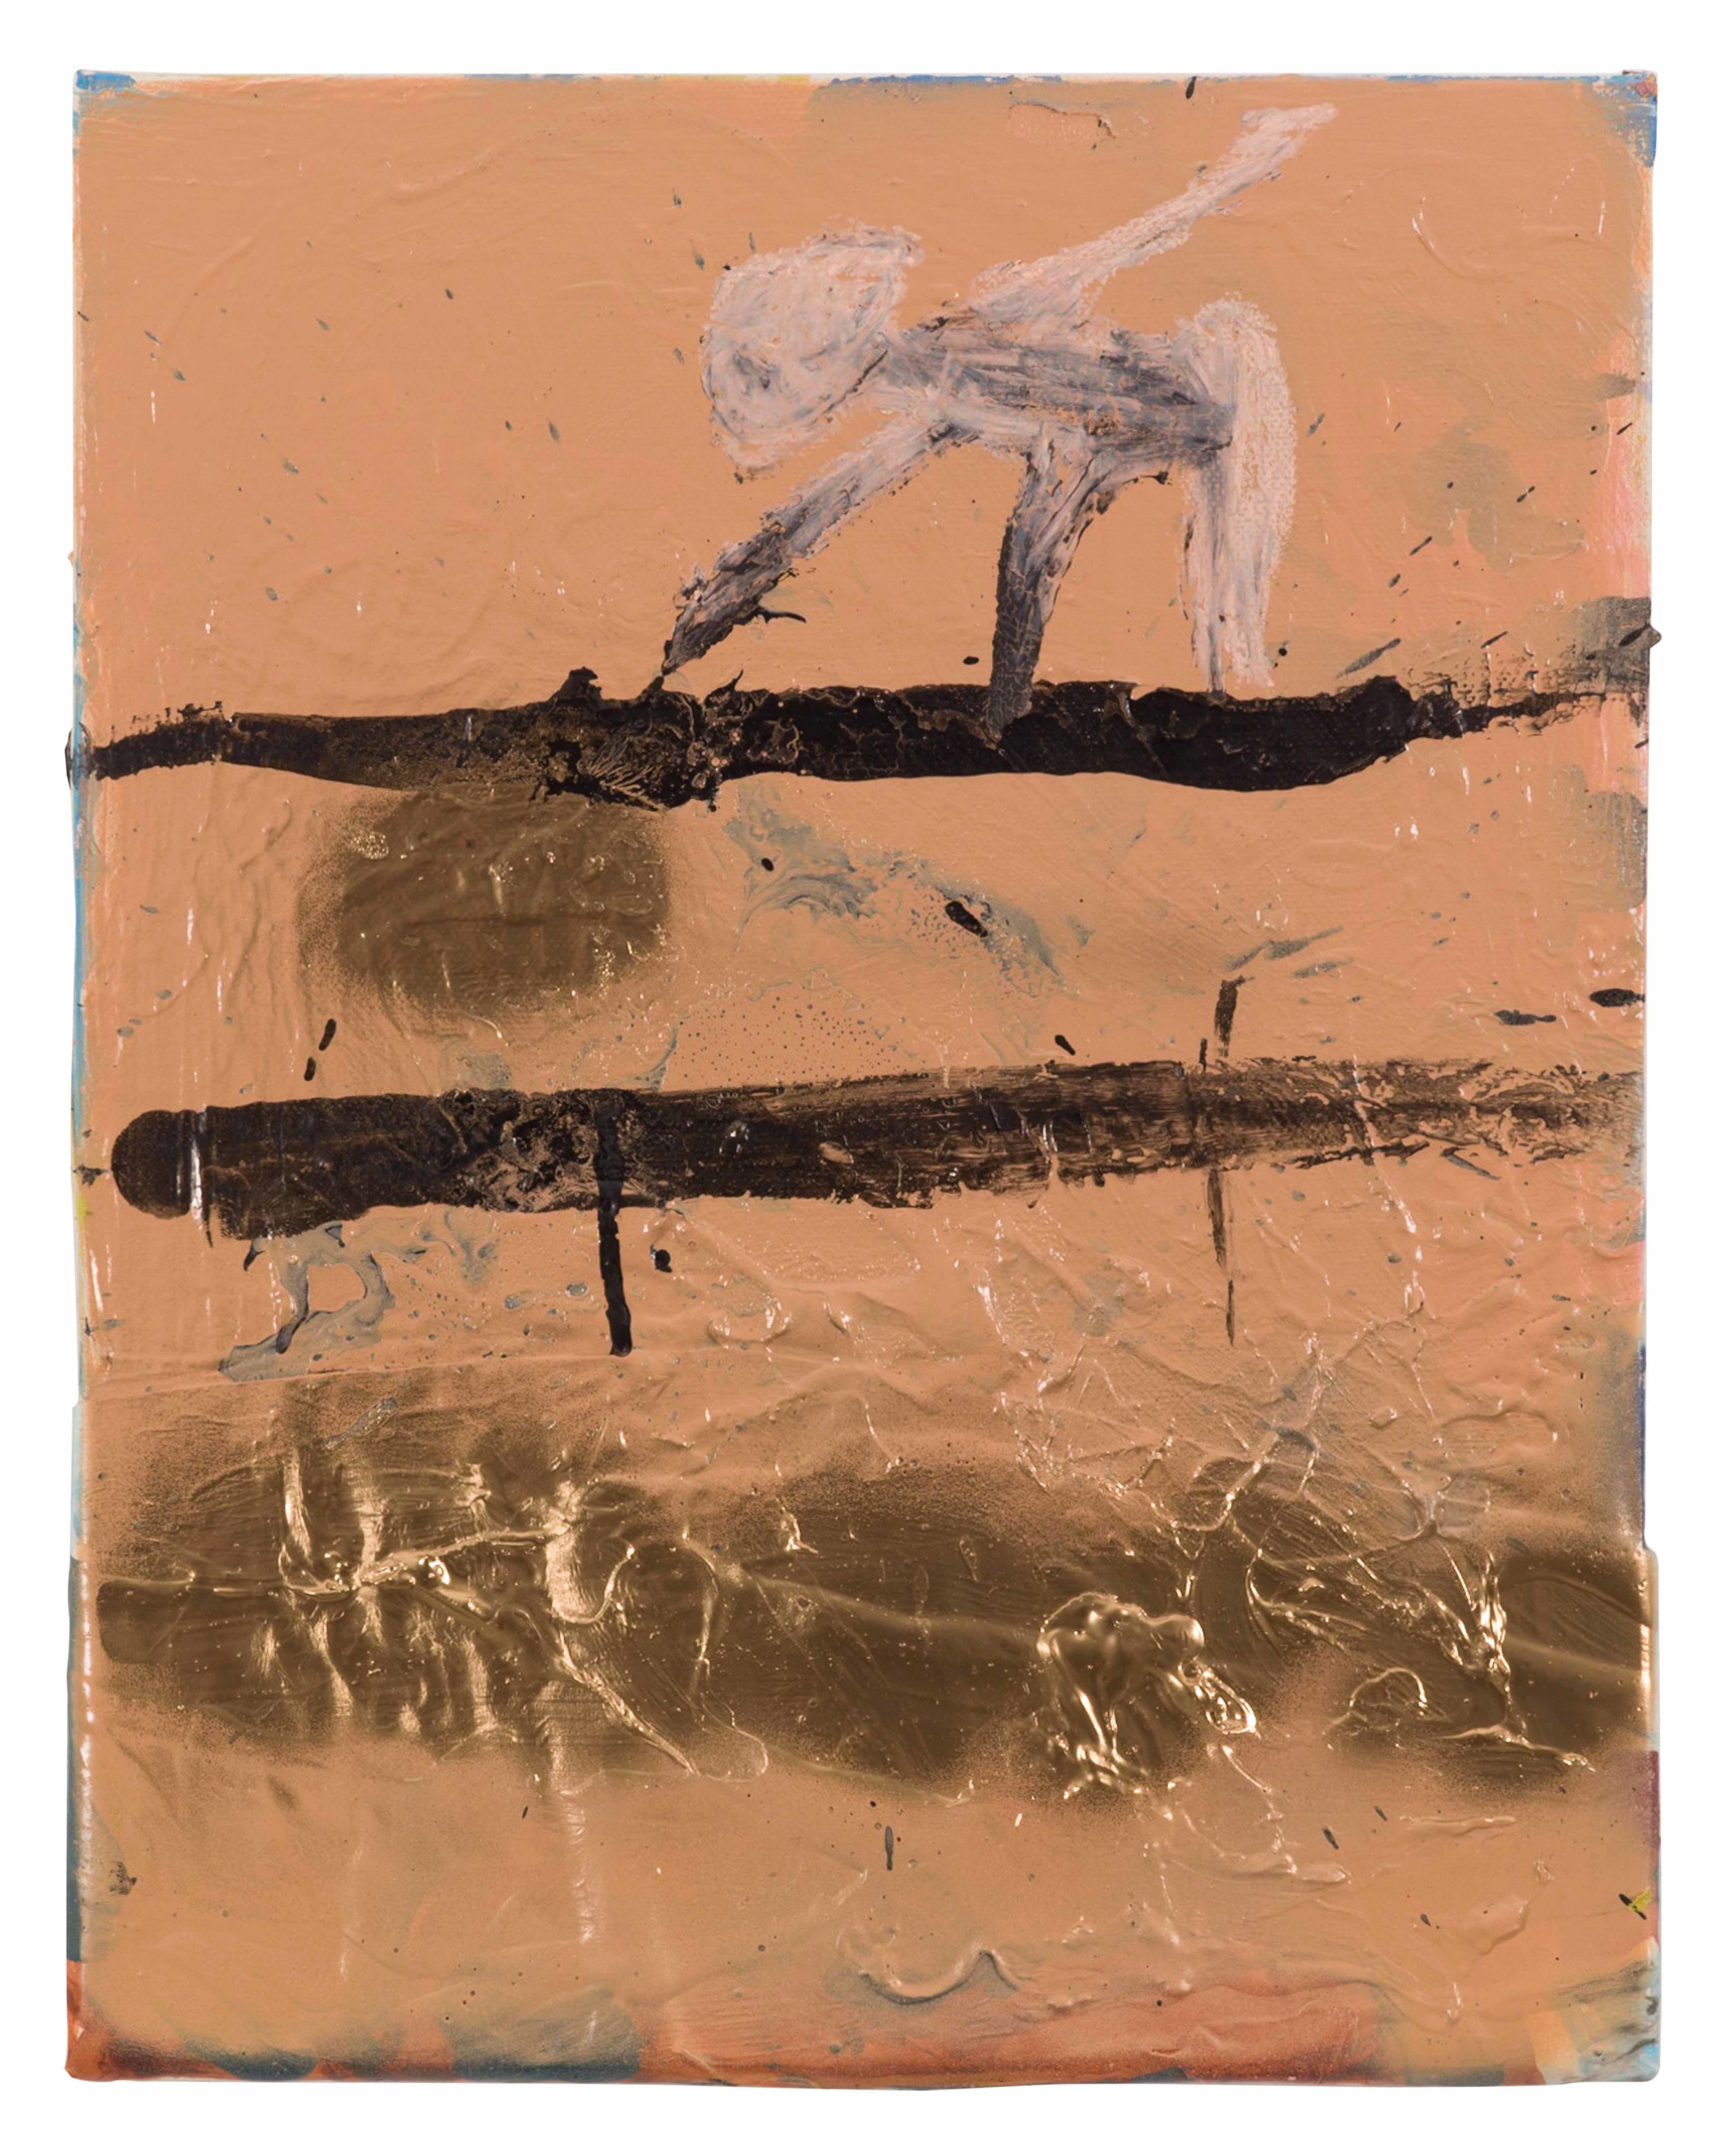 Drew Beattie and Ben Shepard  Small Shelves on Mocha  2015 acrylic, spray paint and paper on canvas 14 x 11 inches